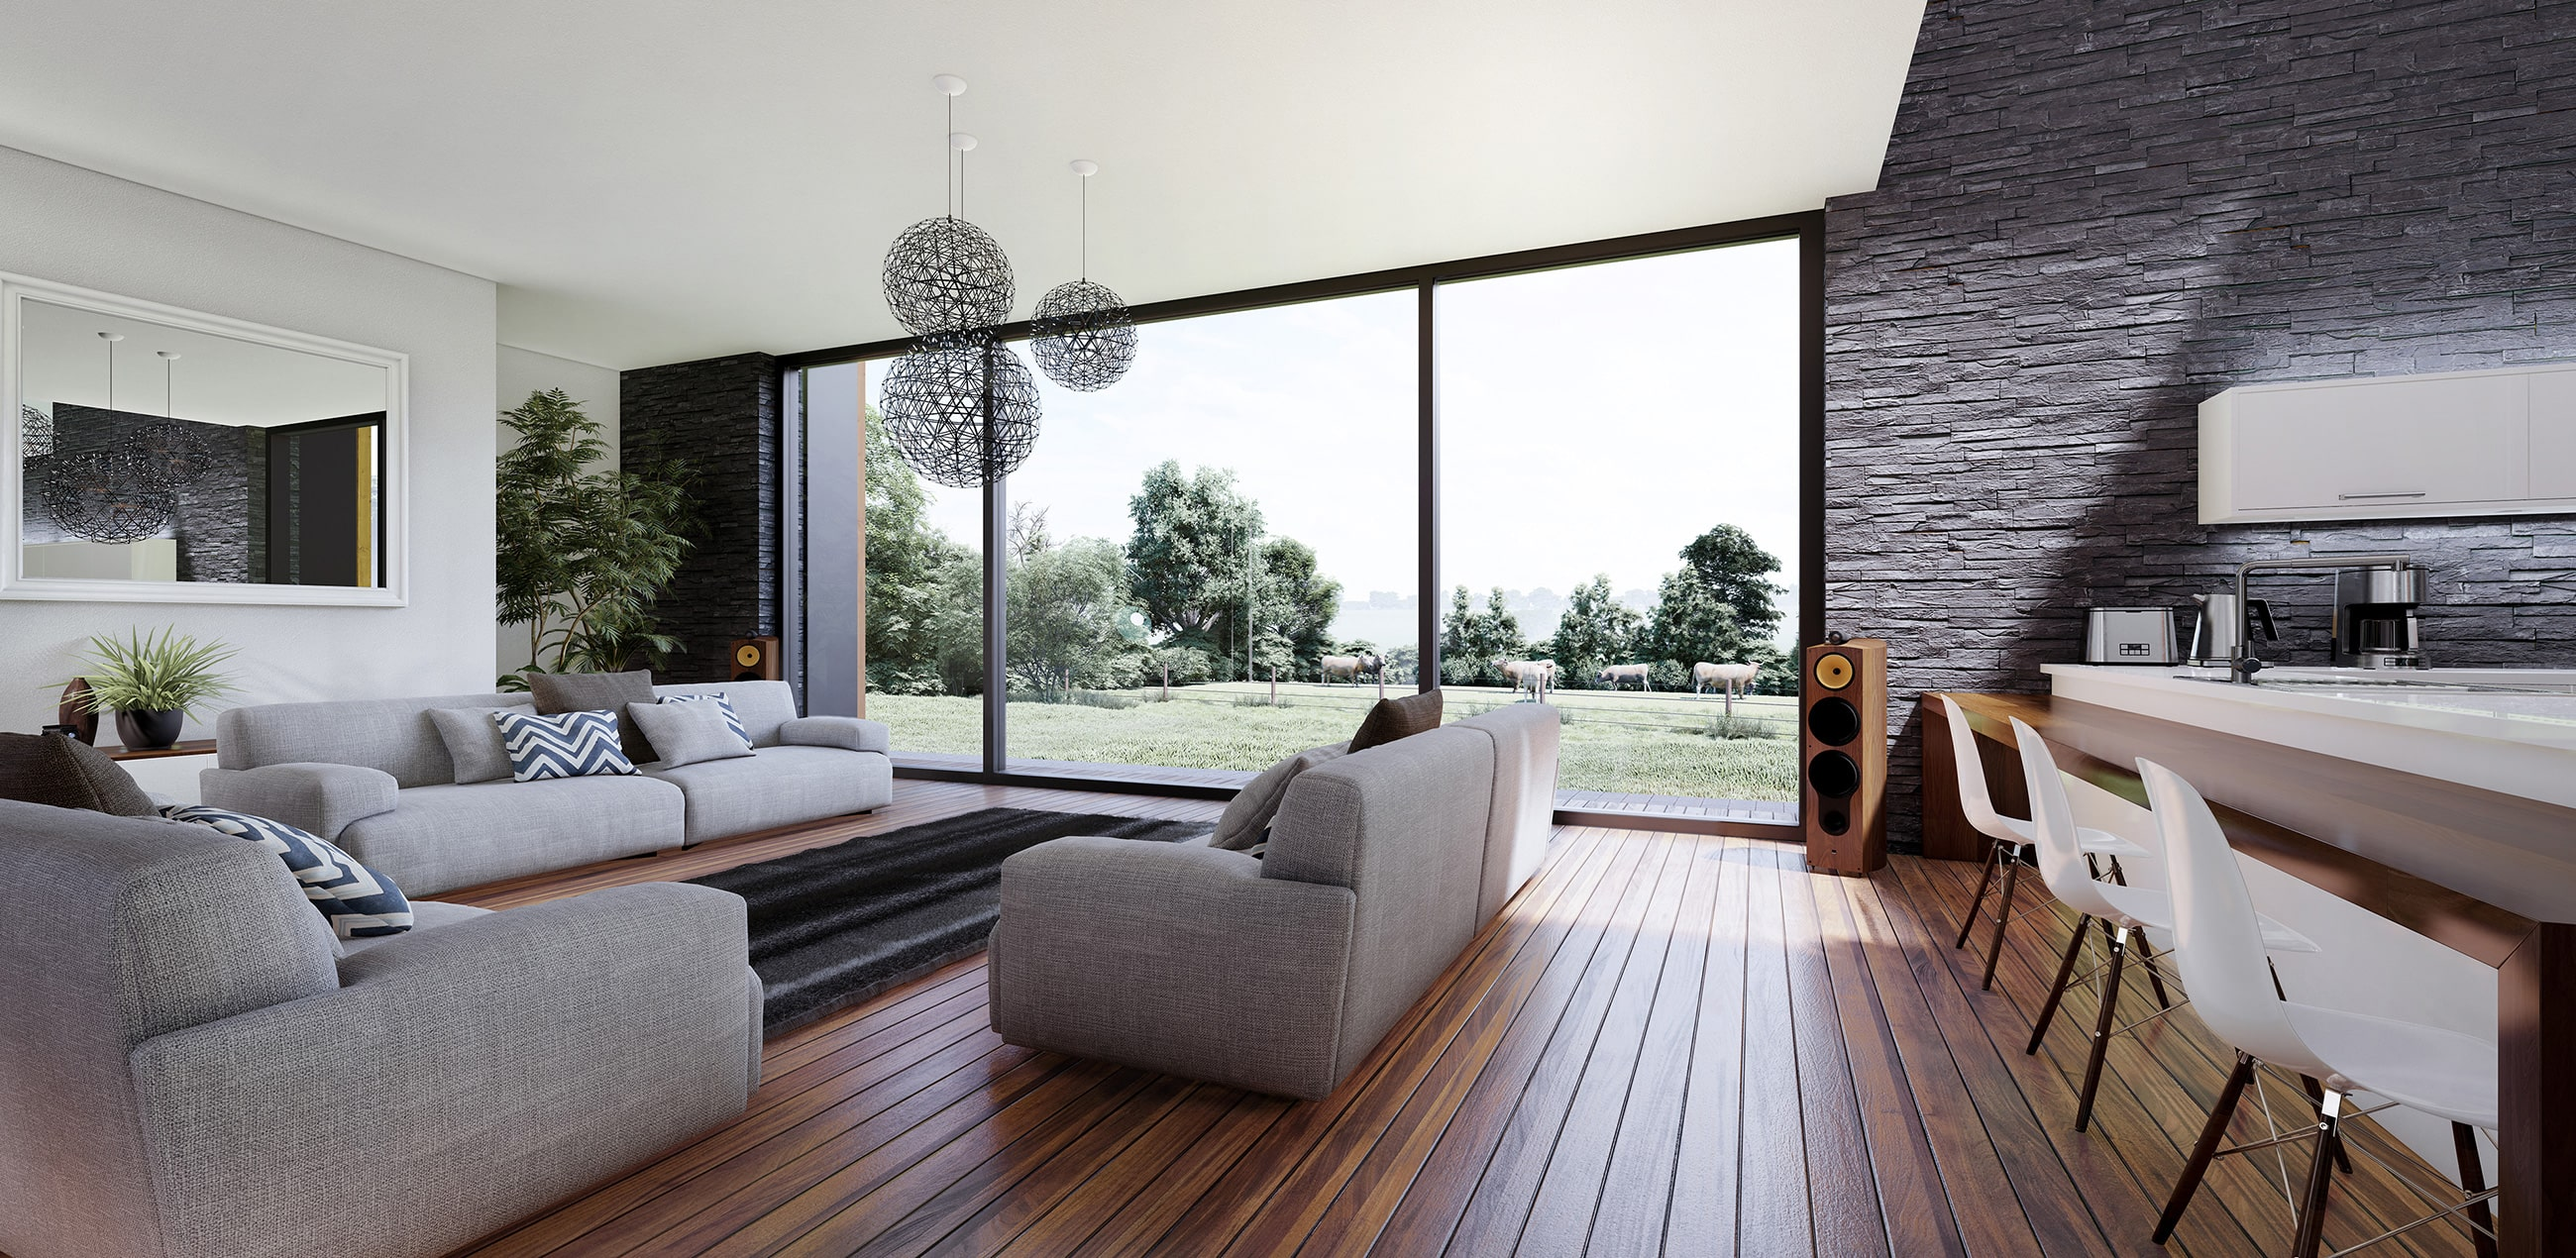 Photorealistic interior 3D rendering using Lumion